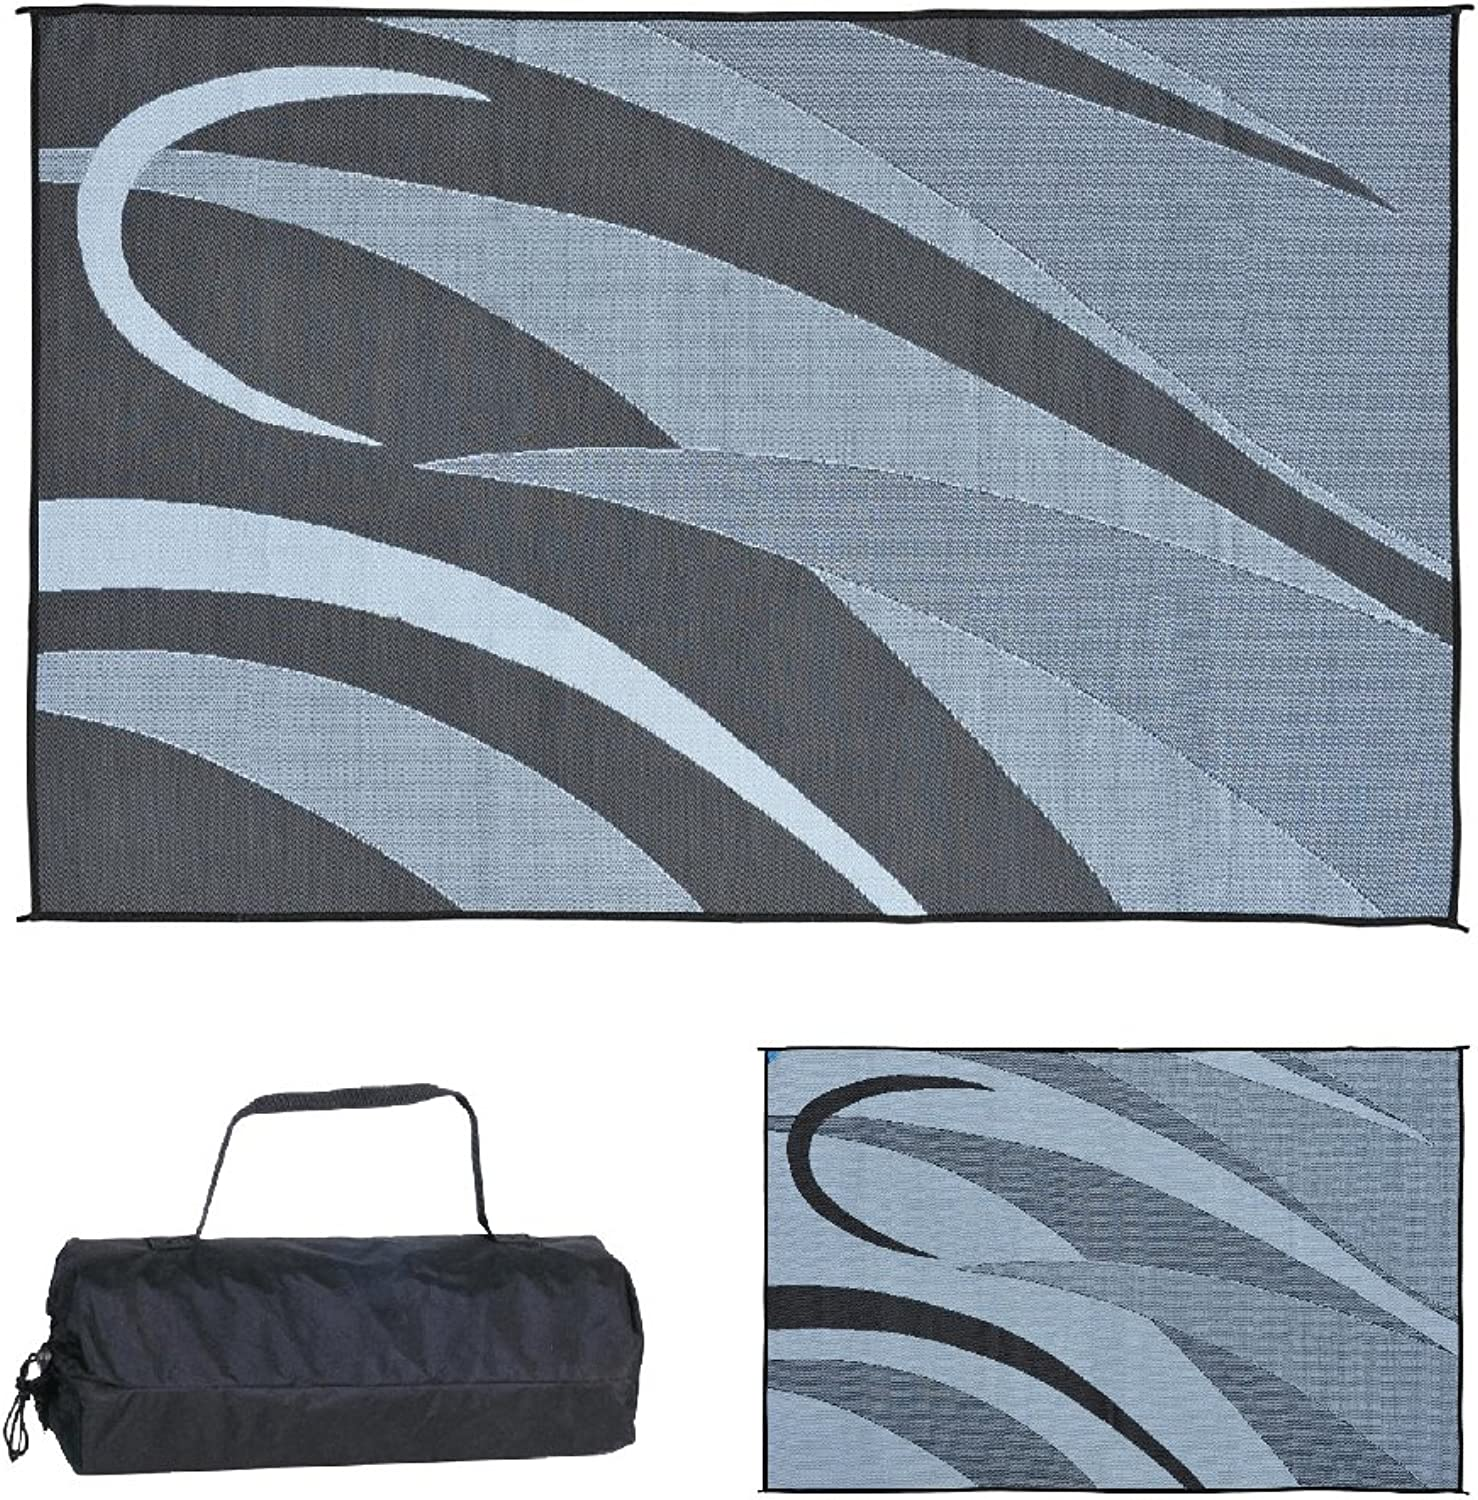 Ming's Mark GA1 Stylish Camping Reversible Graphic Patio Mat-8' x 12', Black Silver